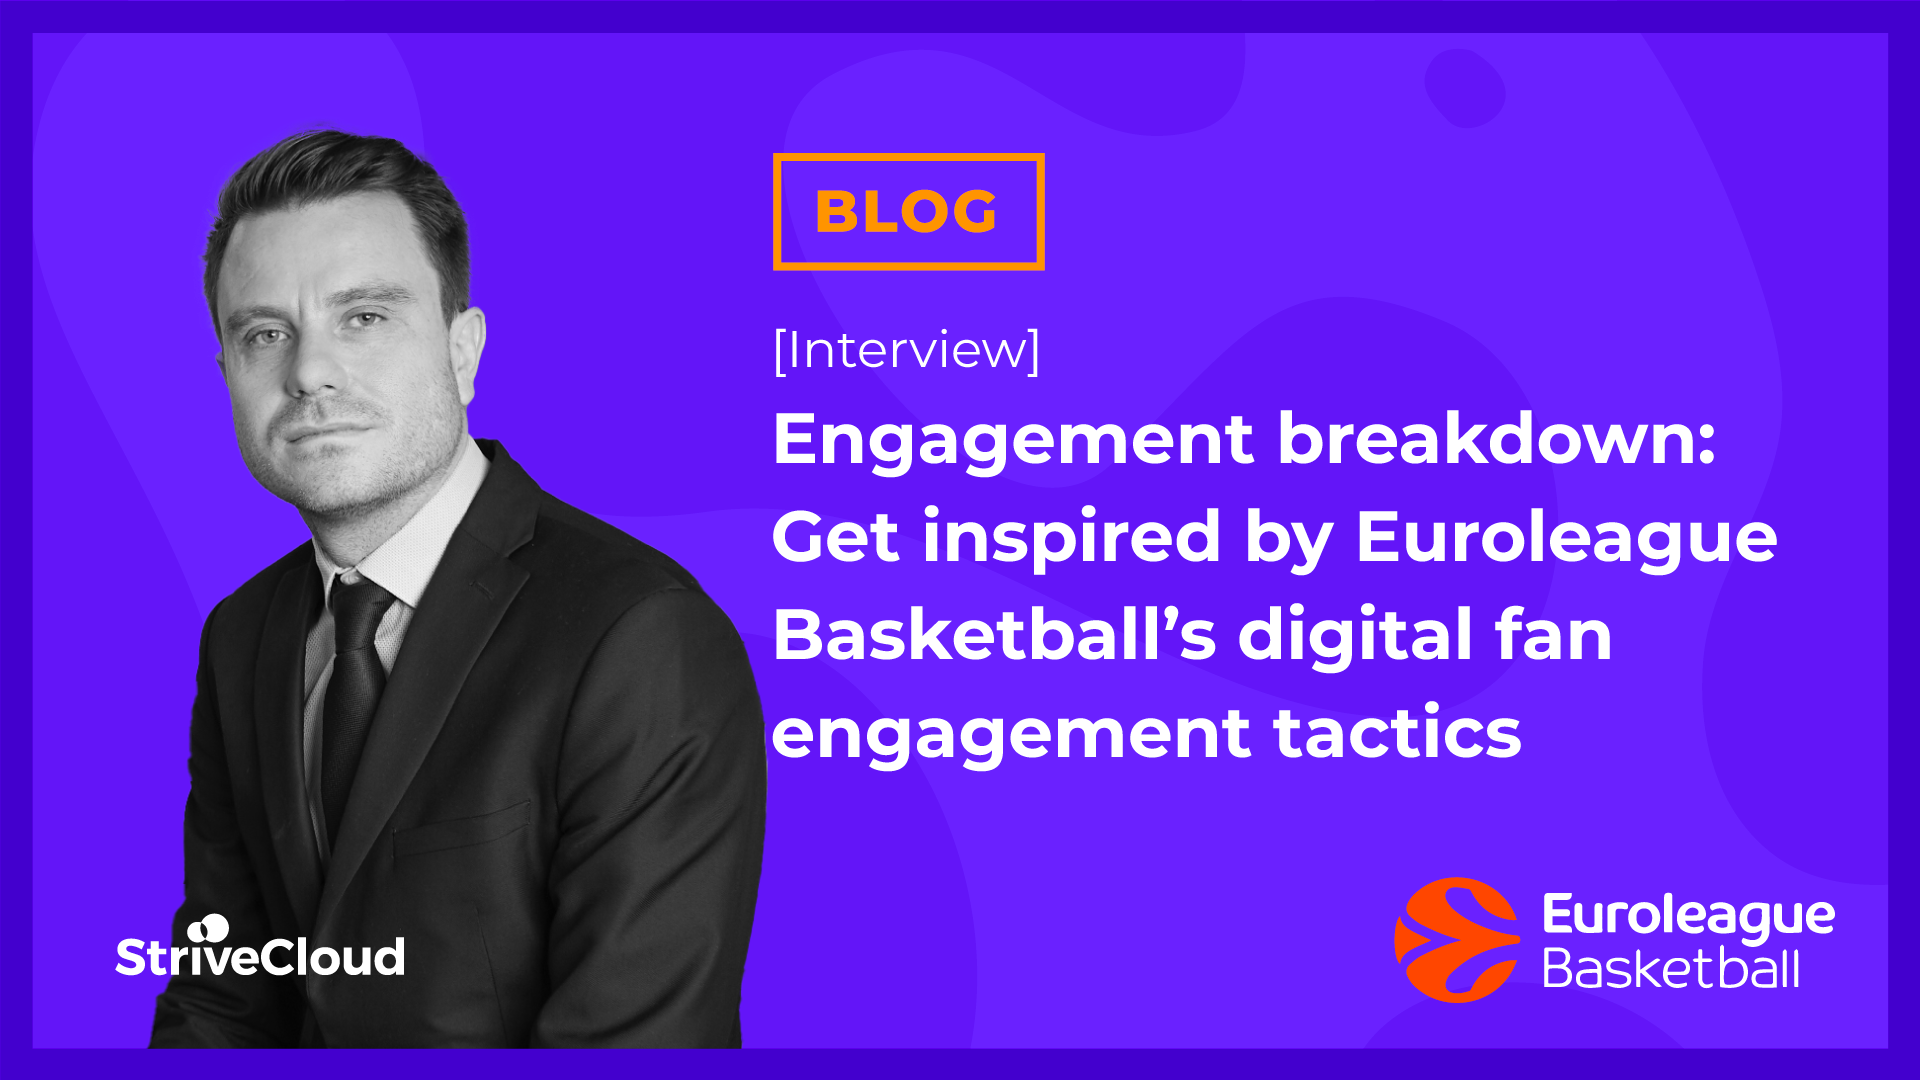 Engagement breakdown: Get inspired by Euroleague Basketball's digital fan engagement tactics